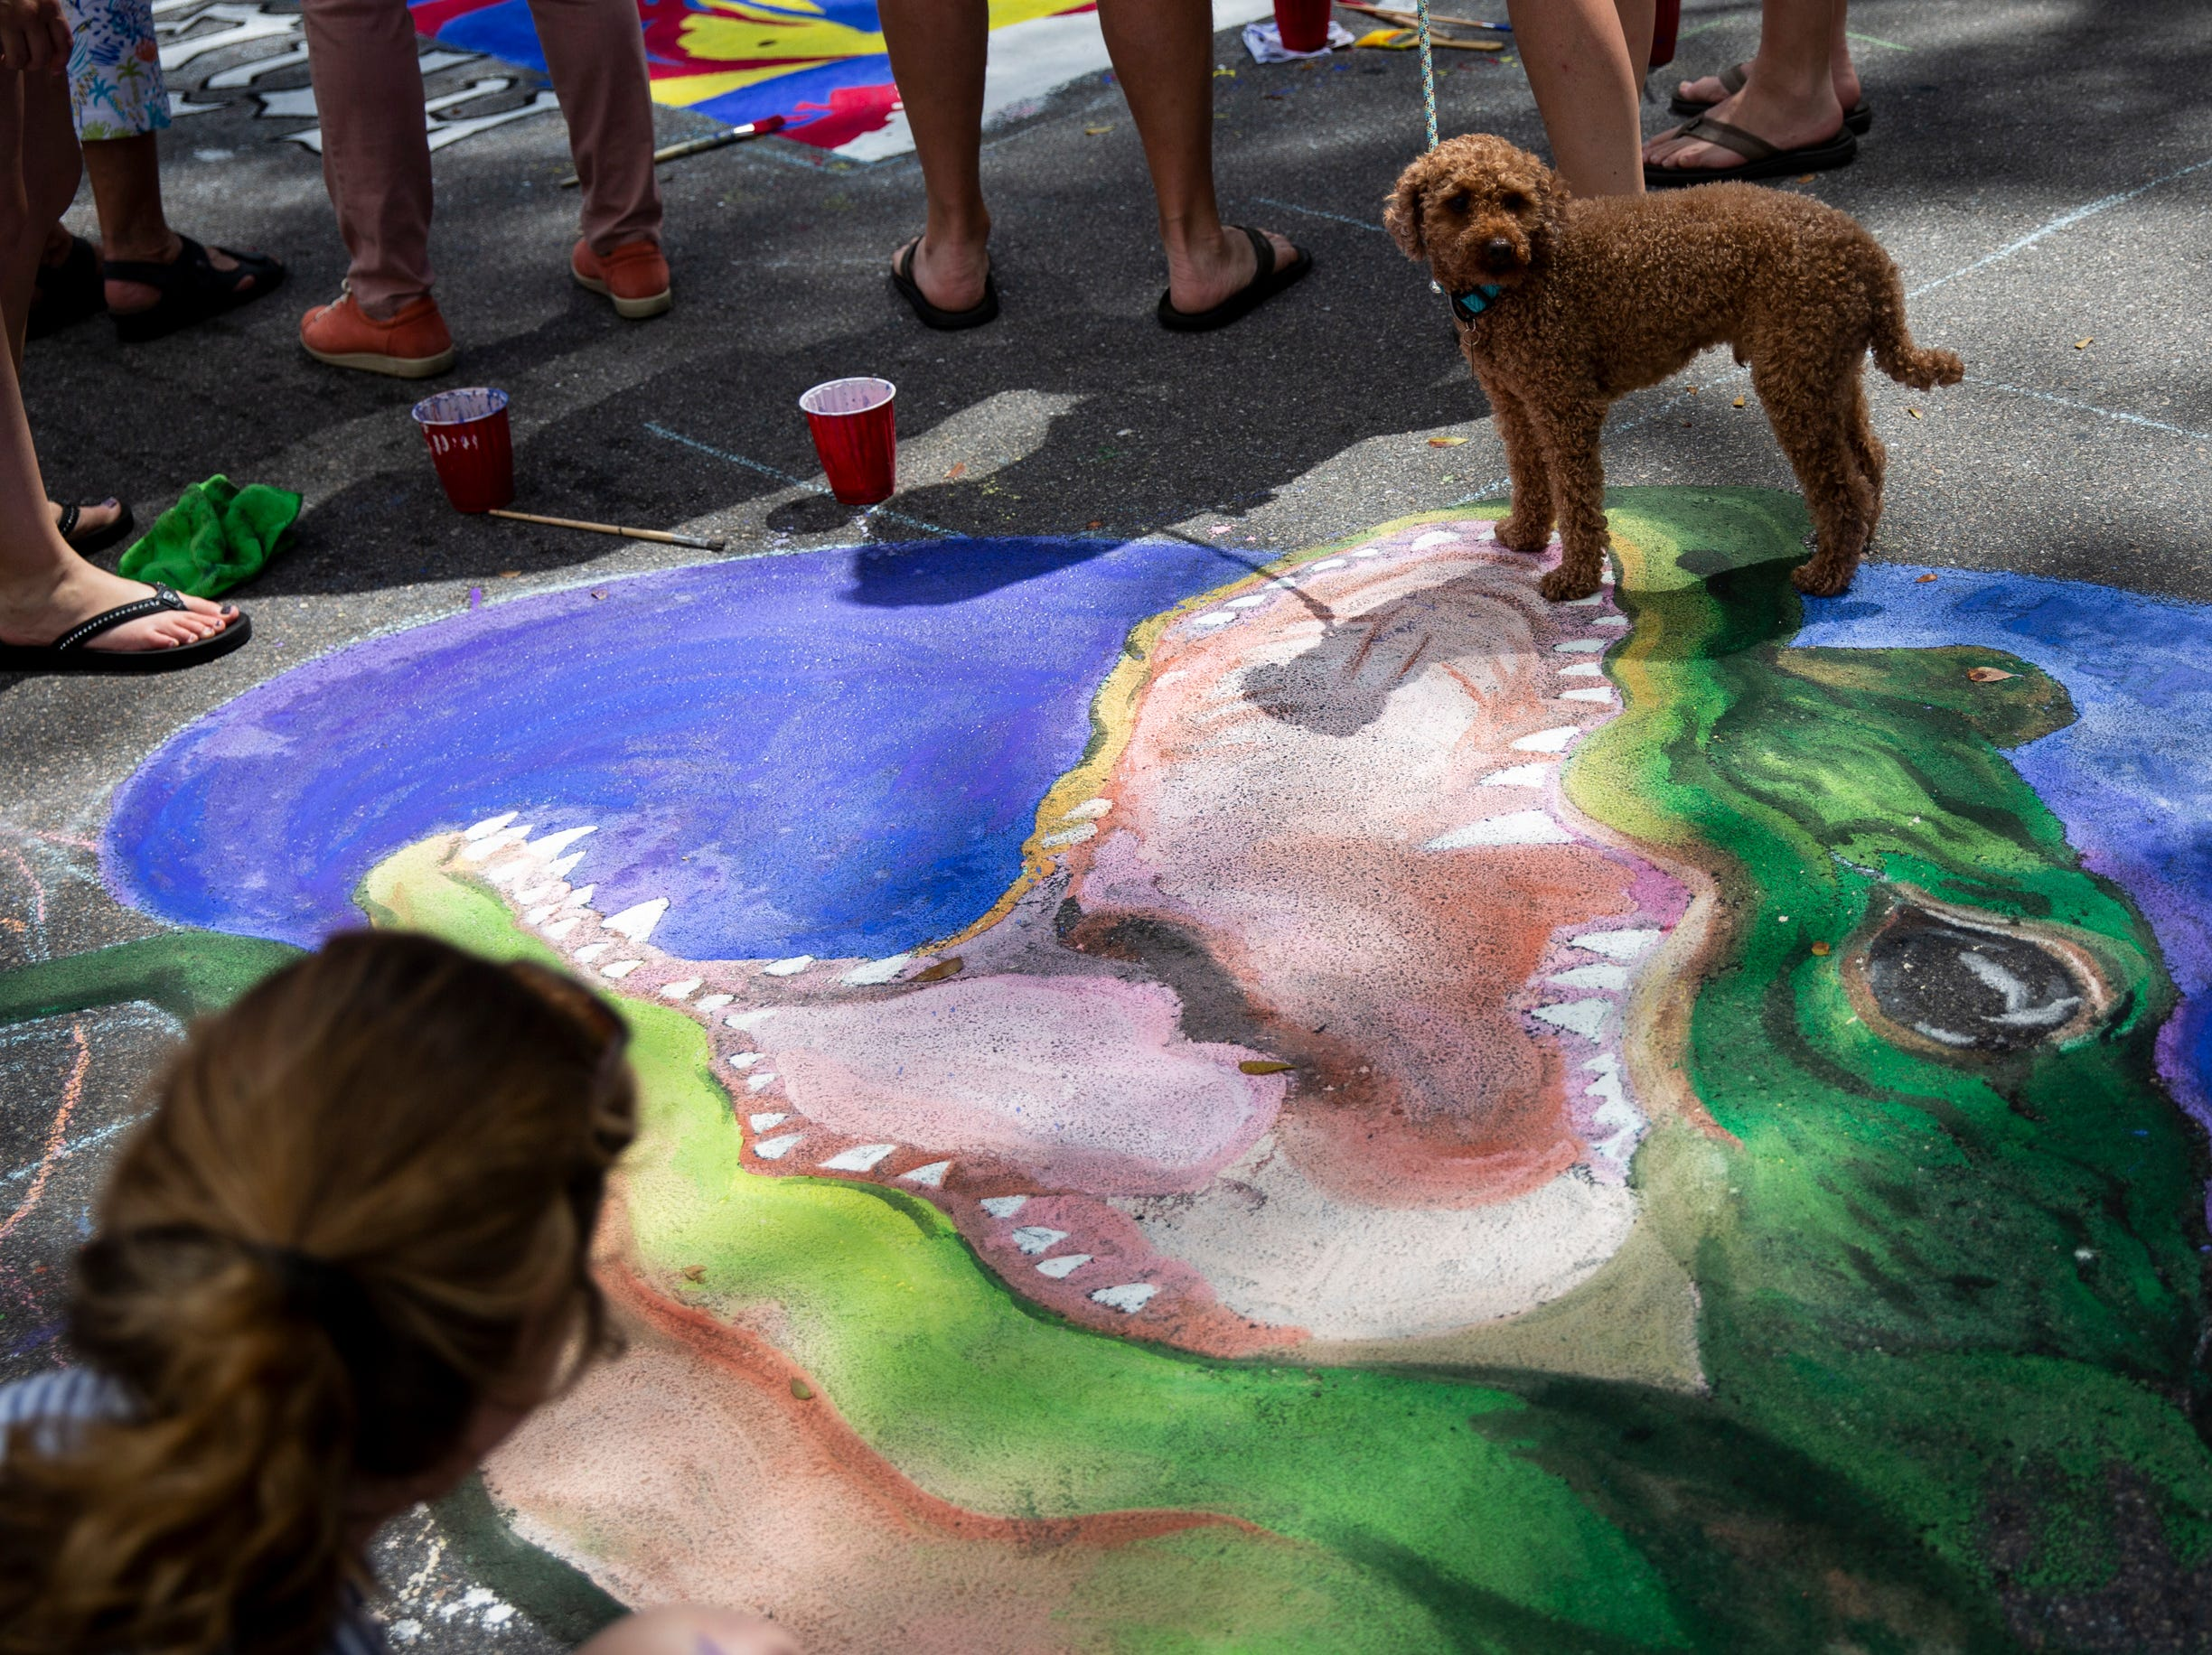 George the dog walks into the mouth of Sarah Jane Post's chalk alligator during the Naples Chalk Art festival on Fifth Avenue South on Saturday, March 9, 2019.